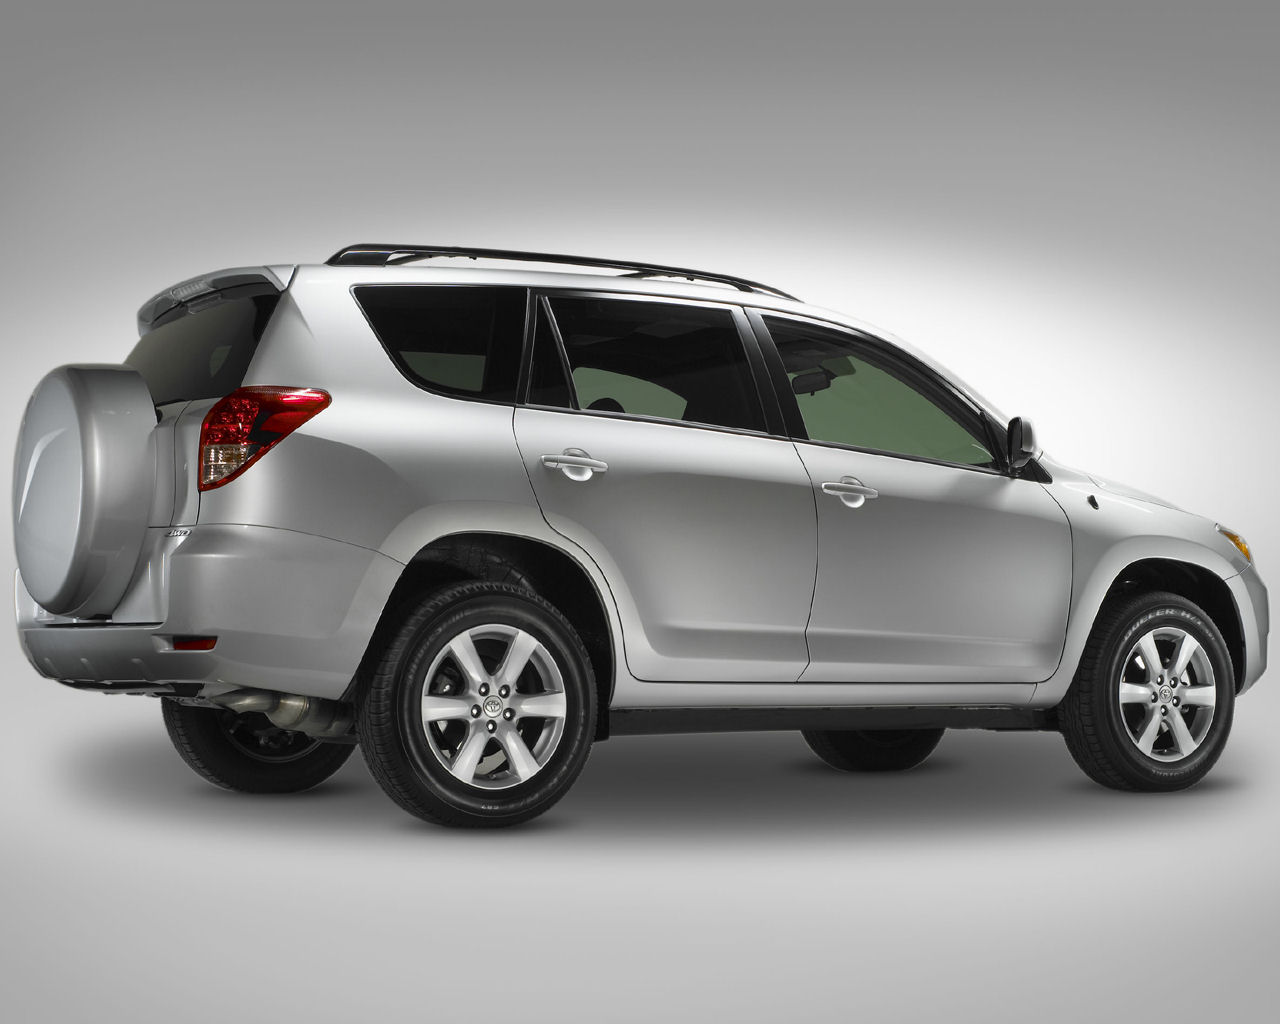 on the Toyota RAV4 wallpaper below and choose Set as Background 1280x1024